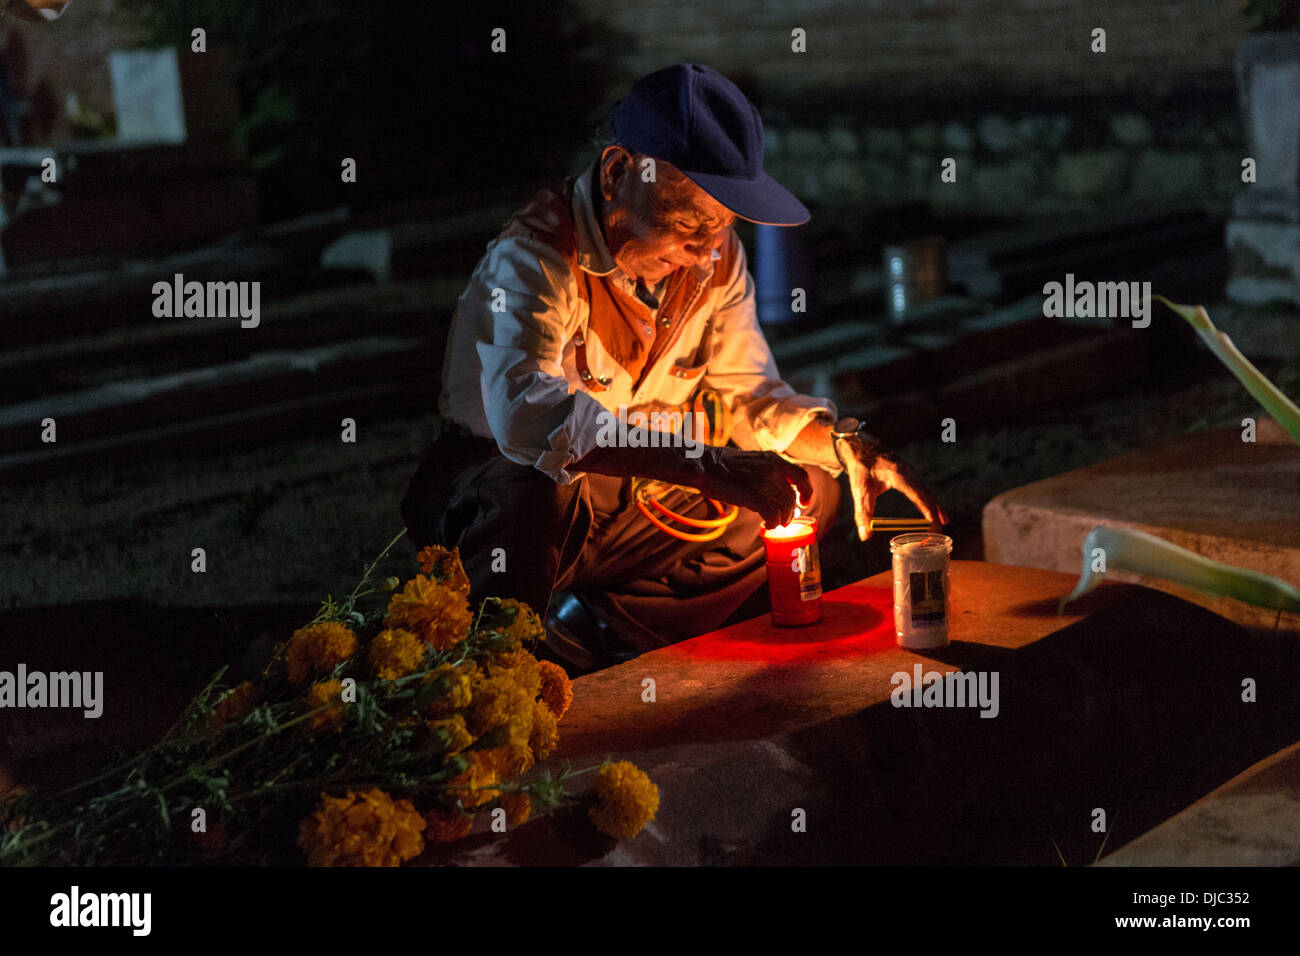 An elderly Mexican cries as he lights a candle at the gravesite of his wife for Day of the Dead festival known in spanish as Día de Muertos at the old cemetery October 31, 2013 in Xoxocotlan, Mexico. - Stock Image